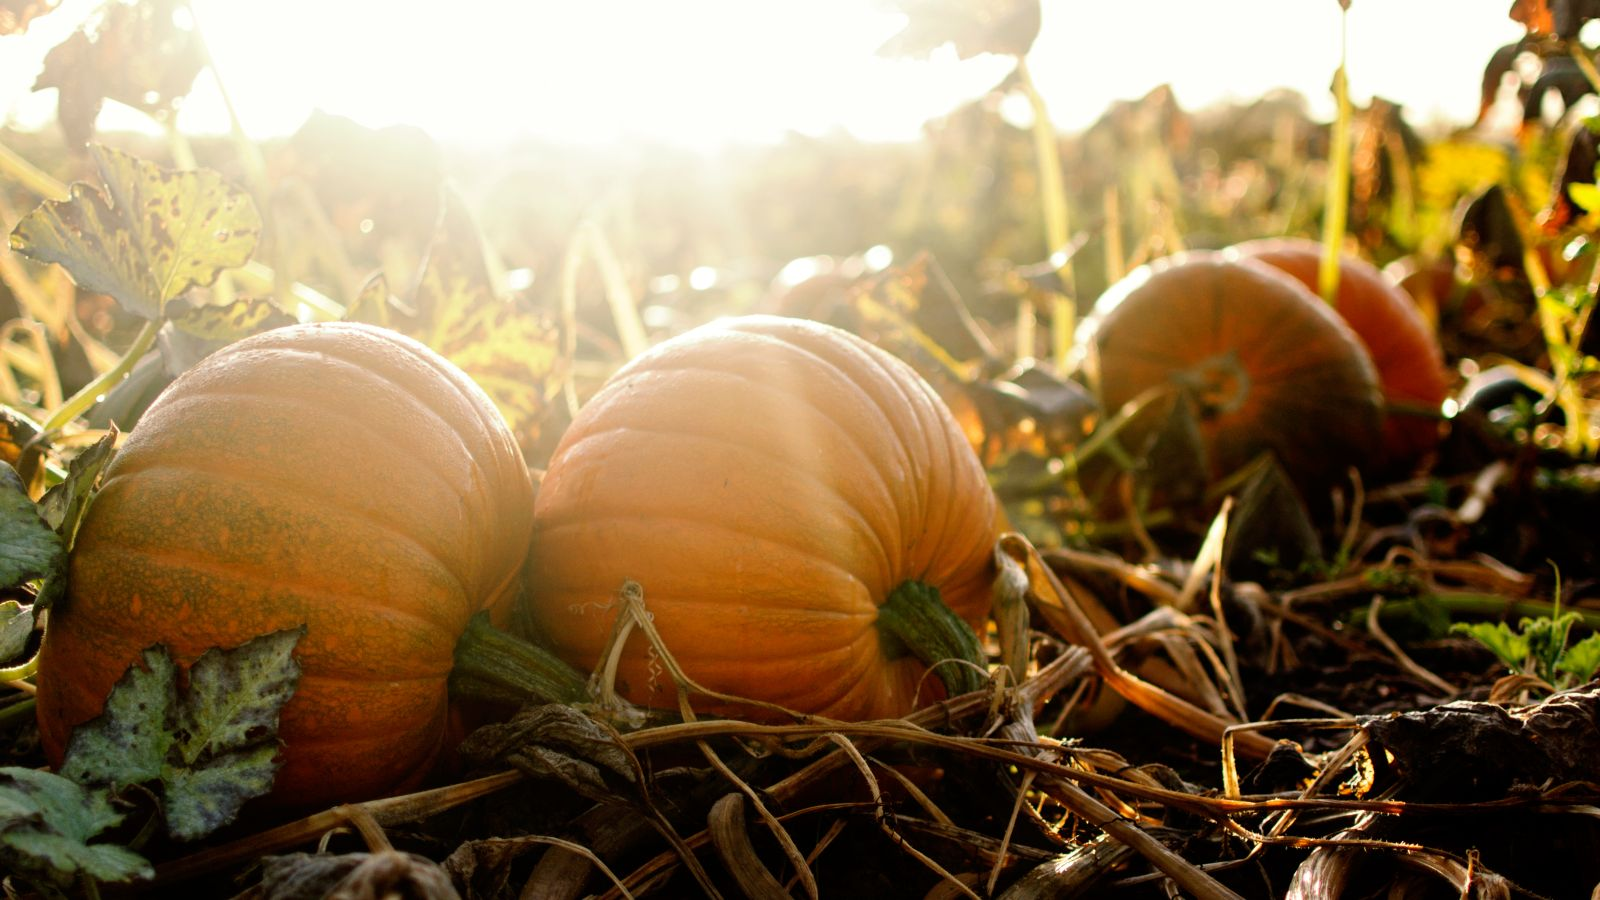 pumpkins in the autumn sunshine